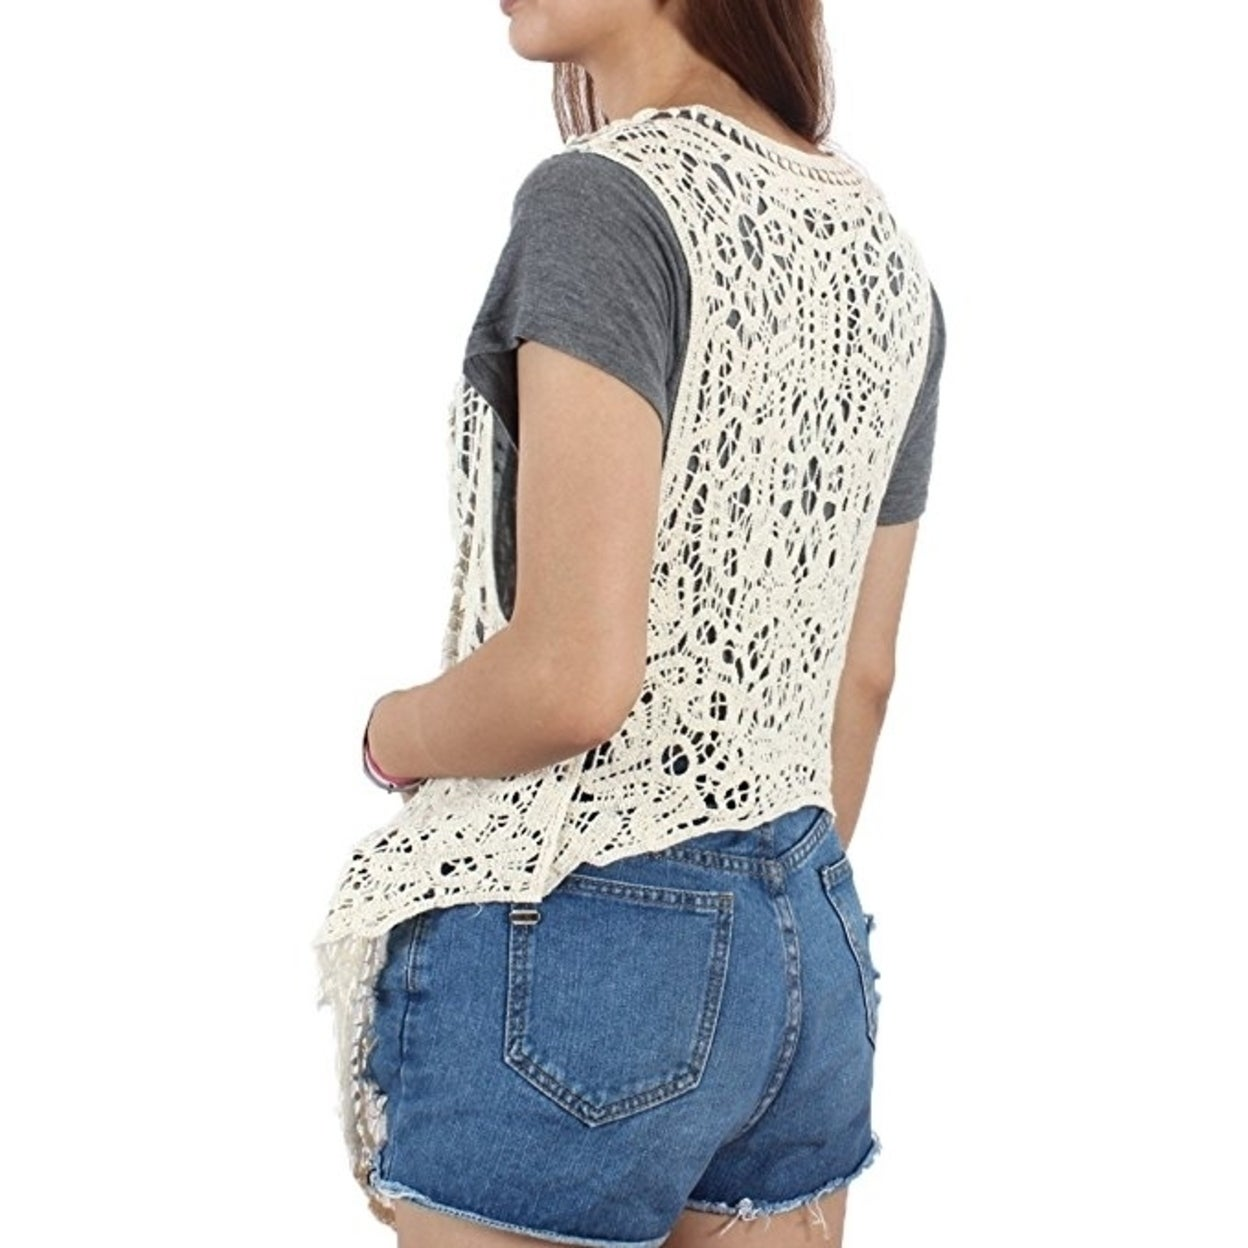 edf32f7c87 Shop Pirate Curiosity Open Stitch Cardigan Boho Hippie Crochet Vest - On  Sale - Free Shipping On Orders Over  45 - Overstock - 25858001